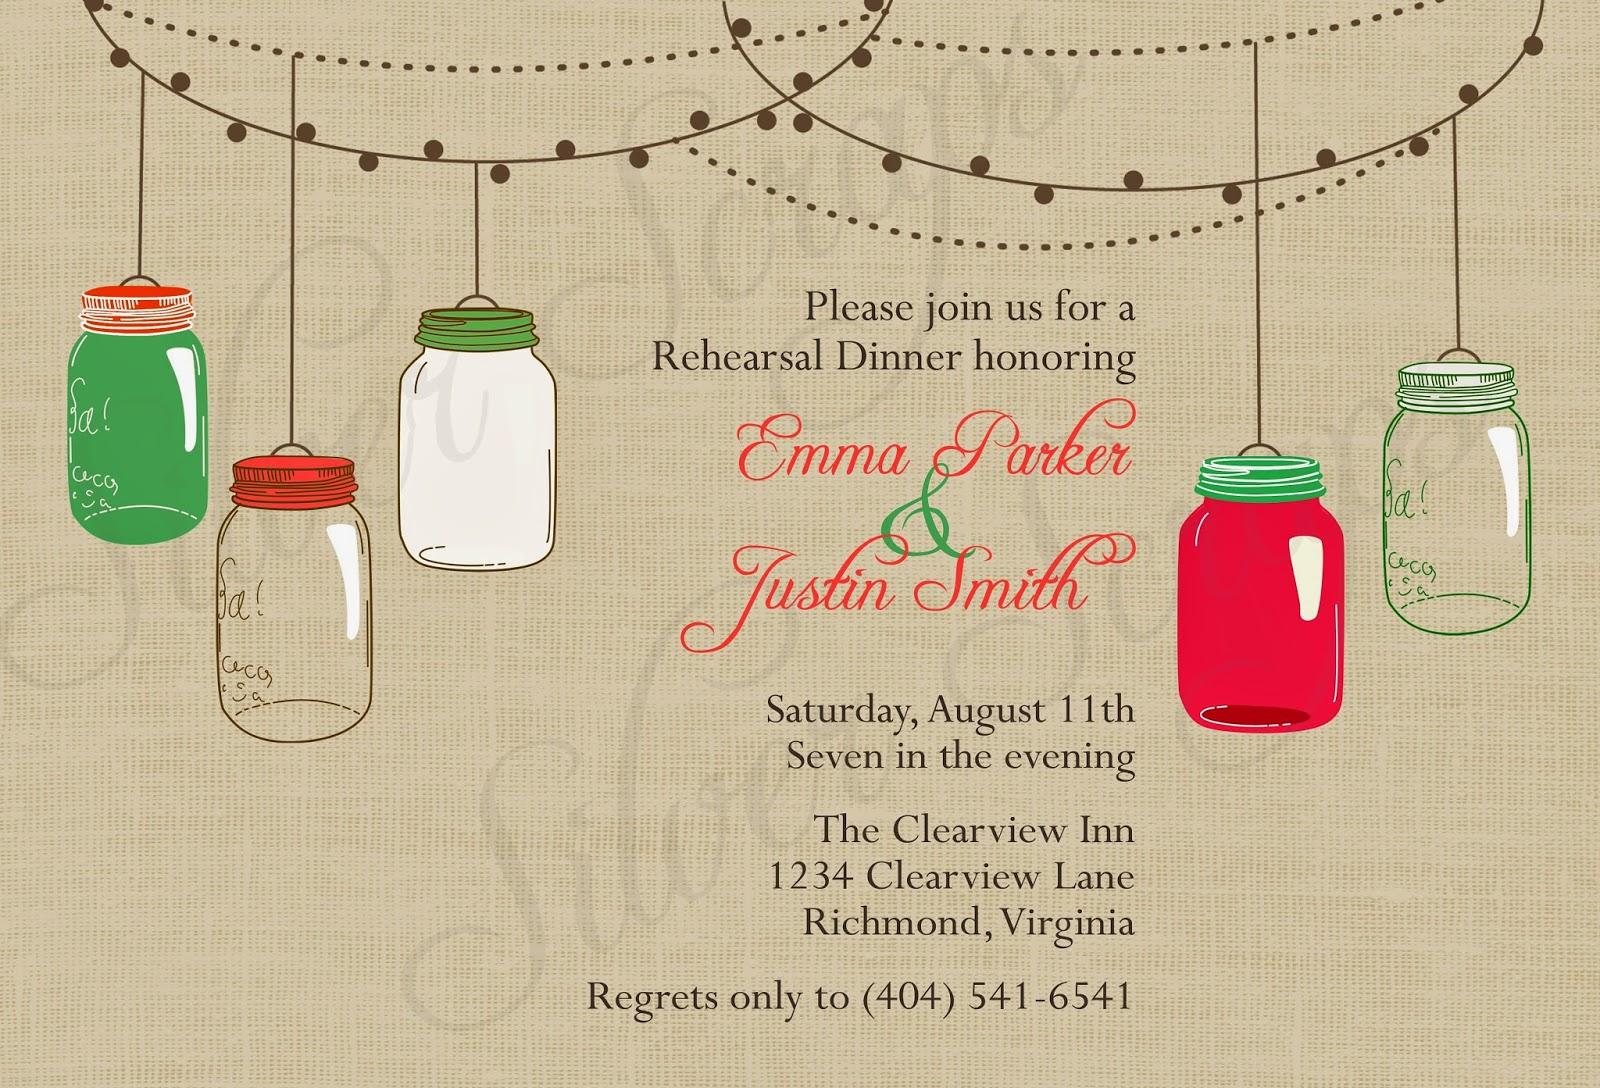 Vintage Hanging Christmas Mason Jars - Custom Holiday Rehearsal Dinner, Wedding, Bridal, Baby Shower, or Engagement Party Invitation - Green red linen burlap rustic barn hanging string lights